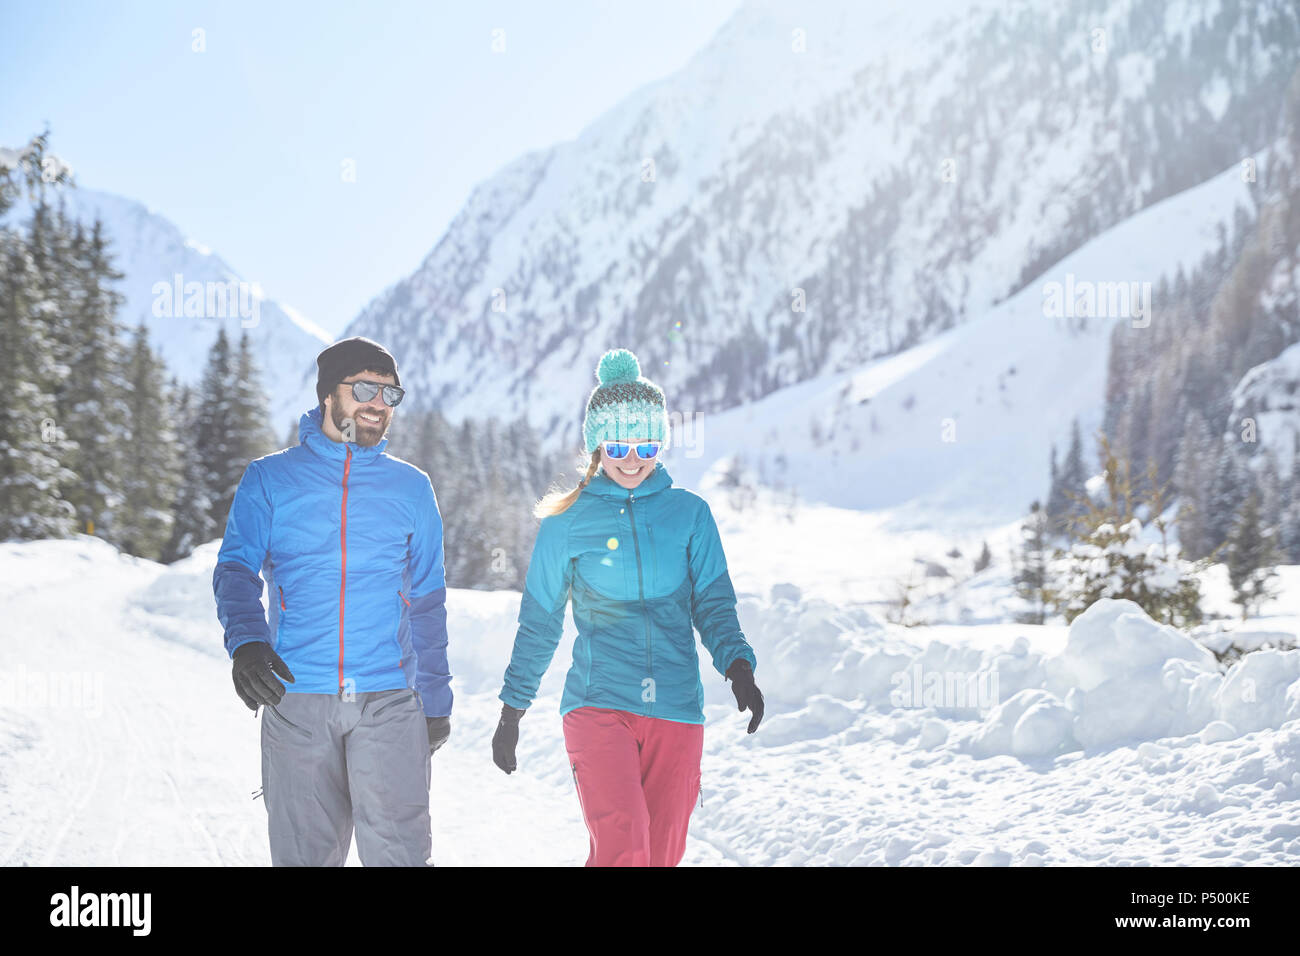 Couple walking in snow-covered landscape - Stock Image